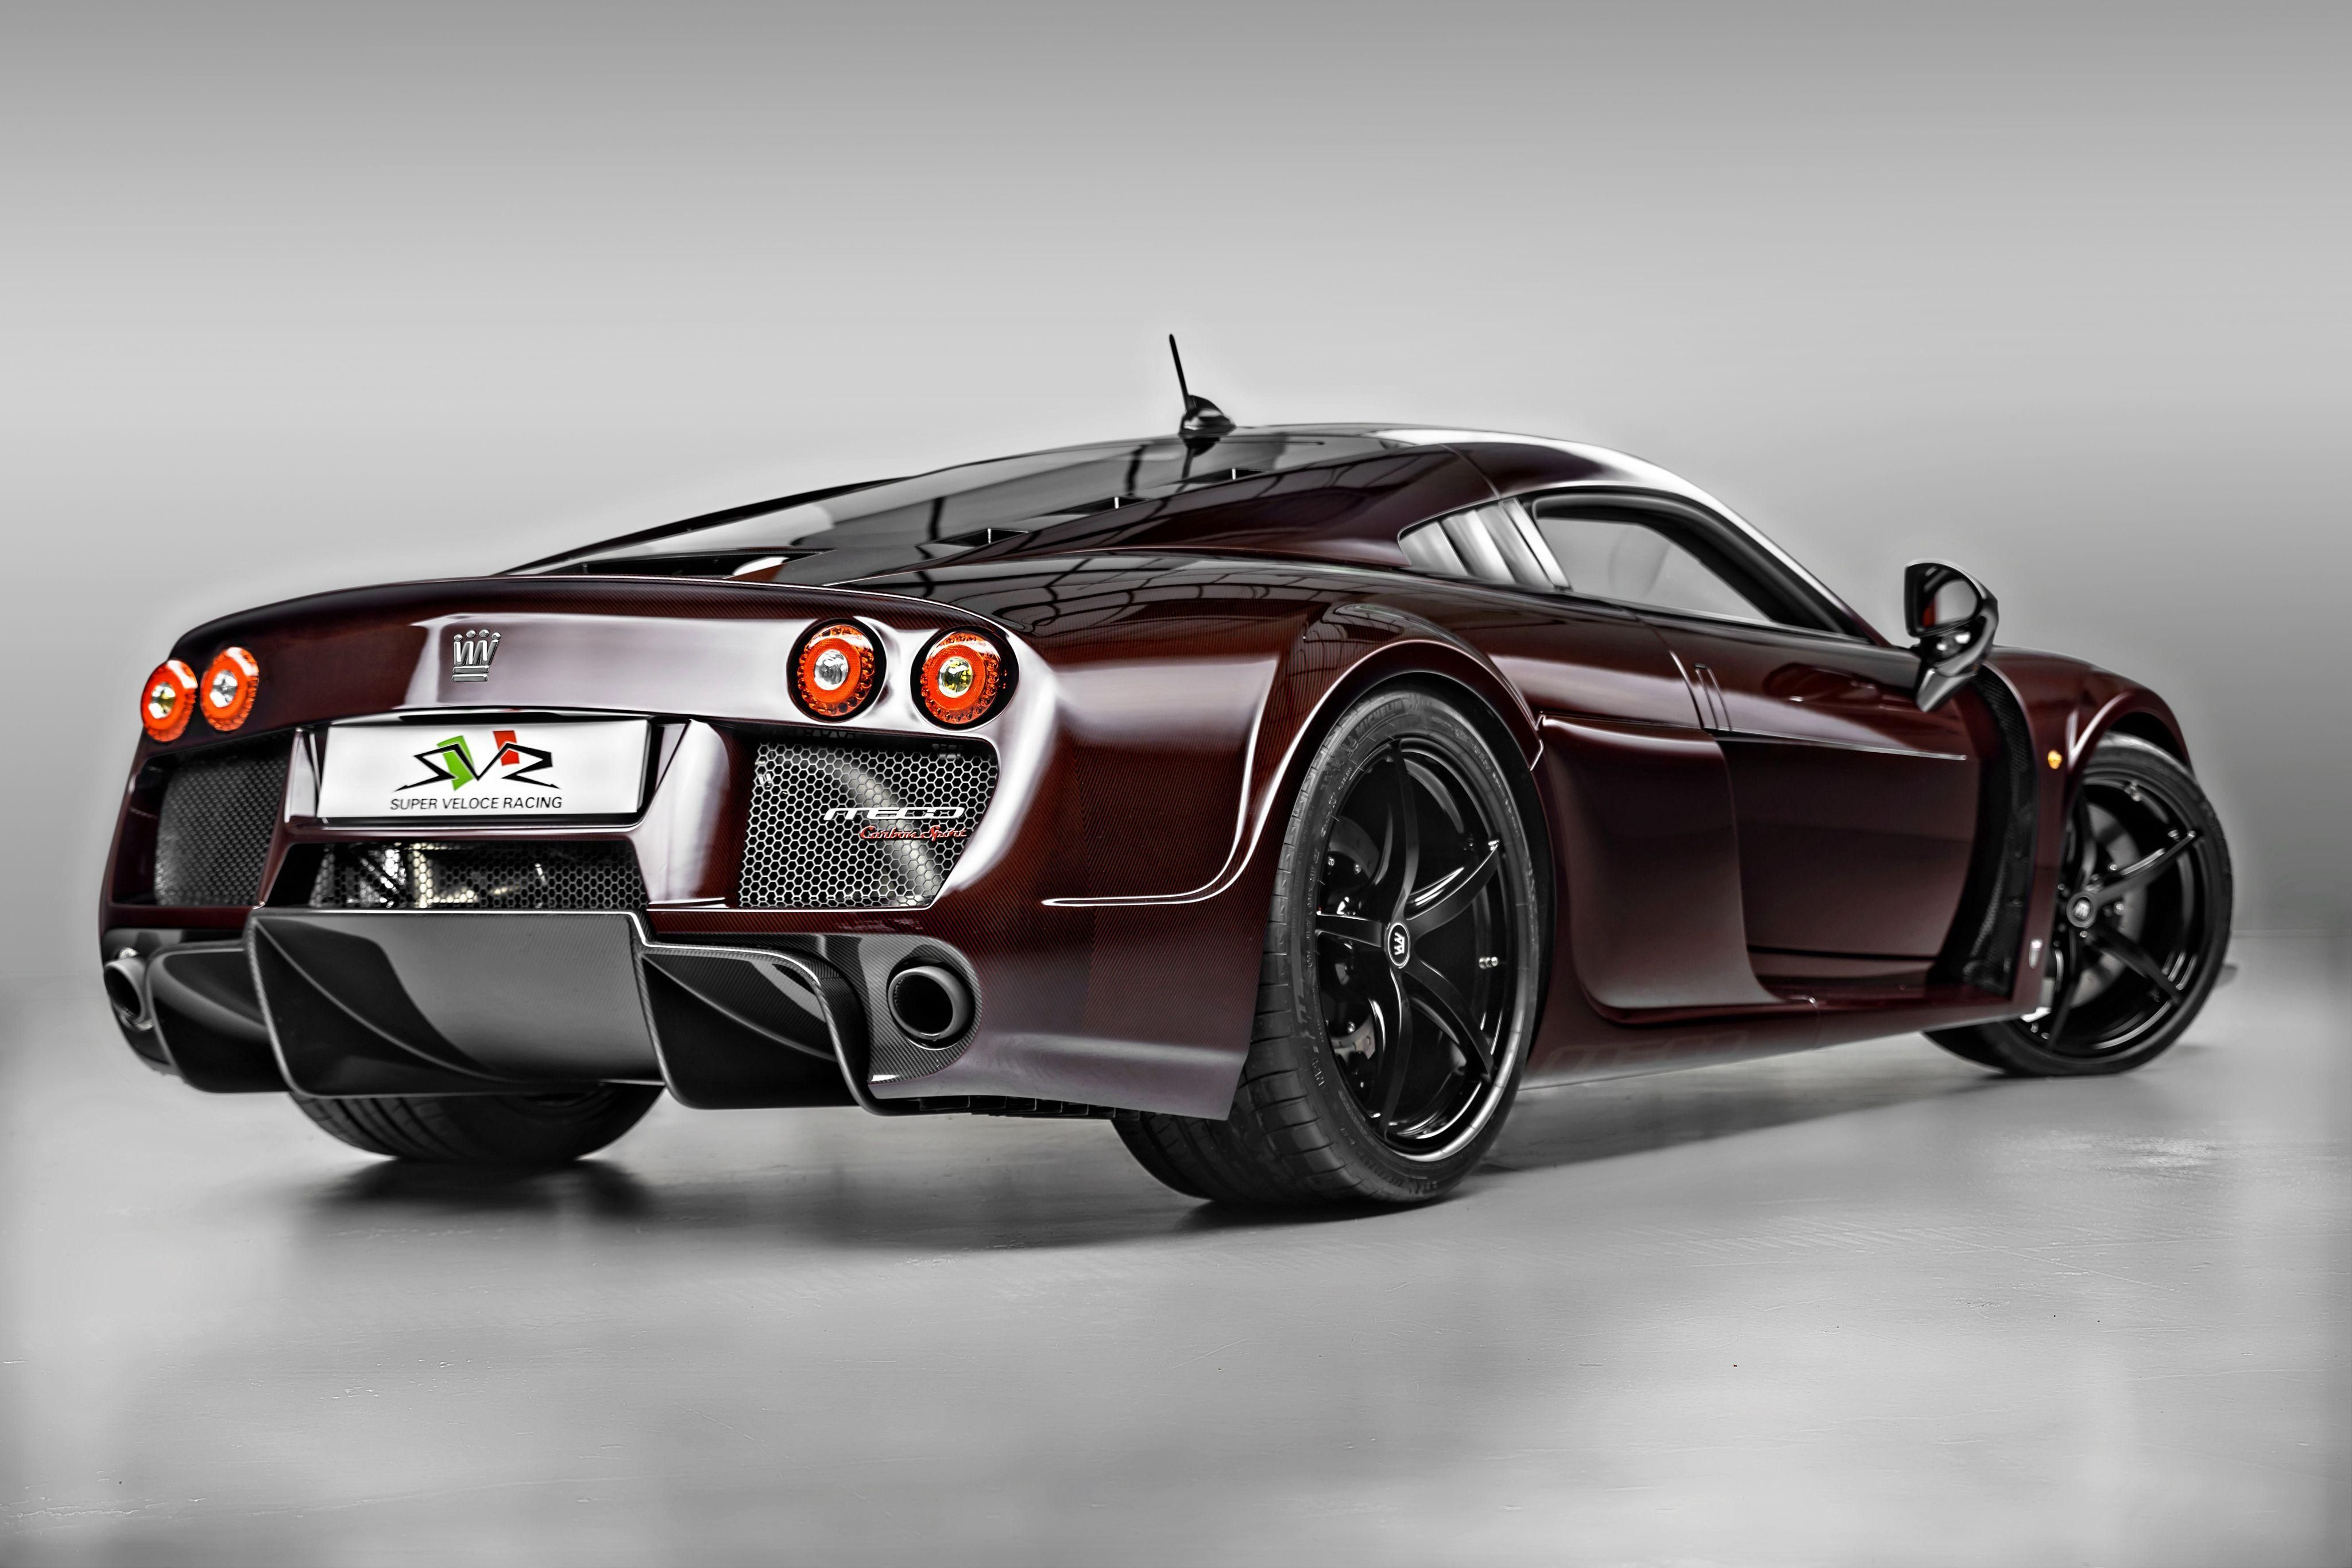 2016 Noble M600 Carbon Sport Super Cars Supercars For Sale British Sports Cars